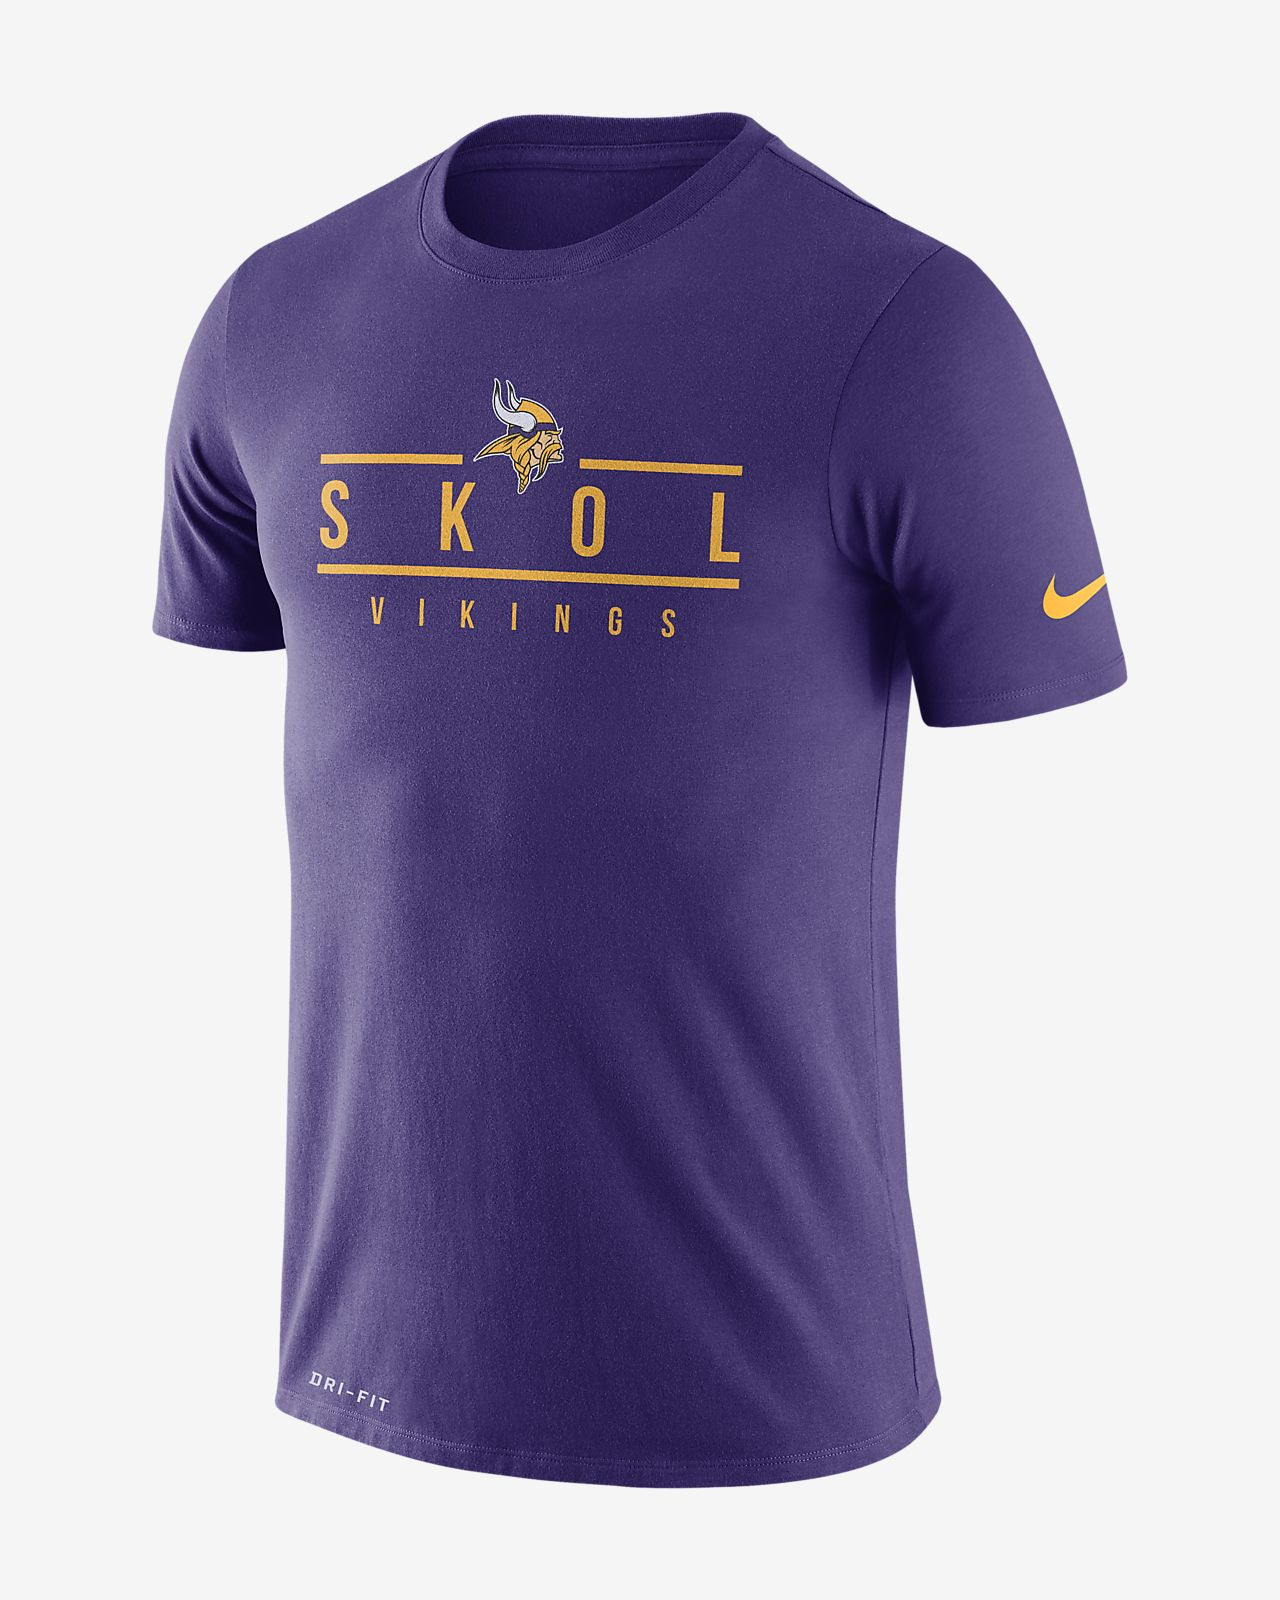 Nike Dri-FIT Local (NFL Vikings) Men's T-Shirt